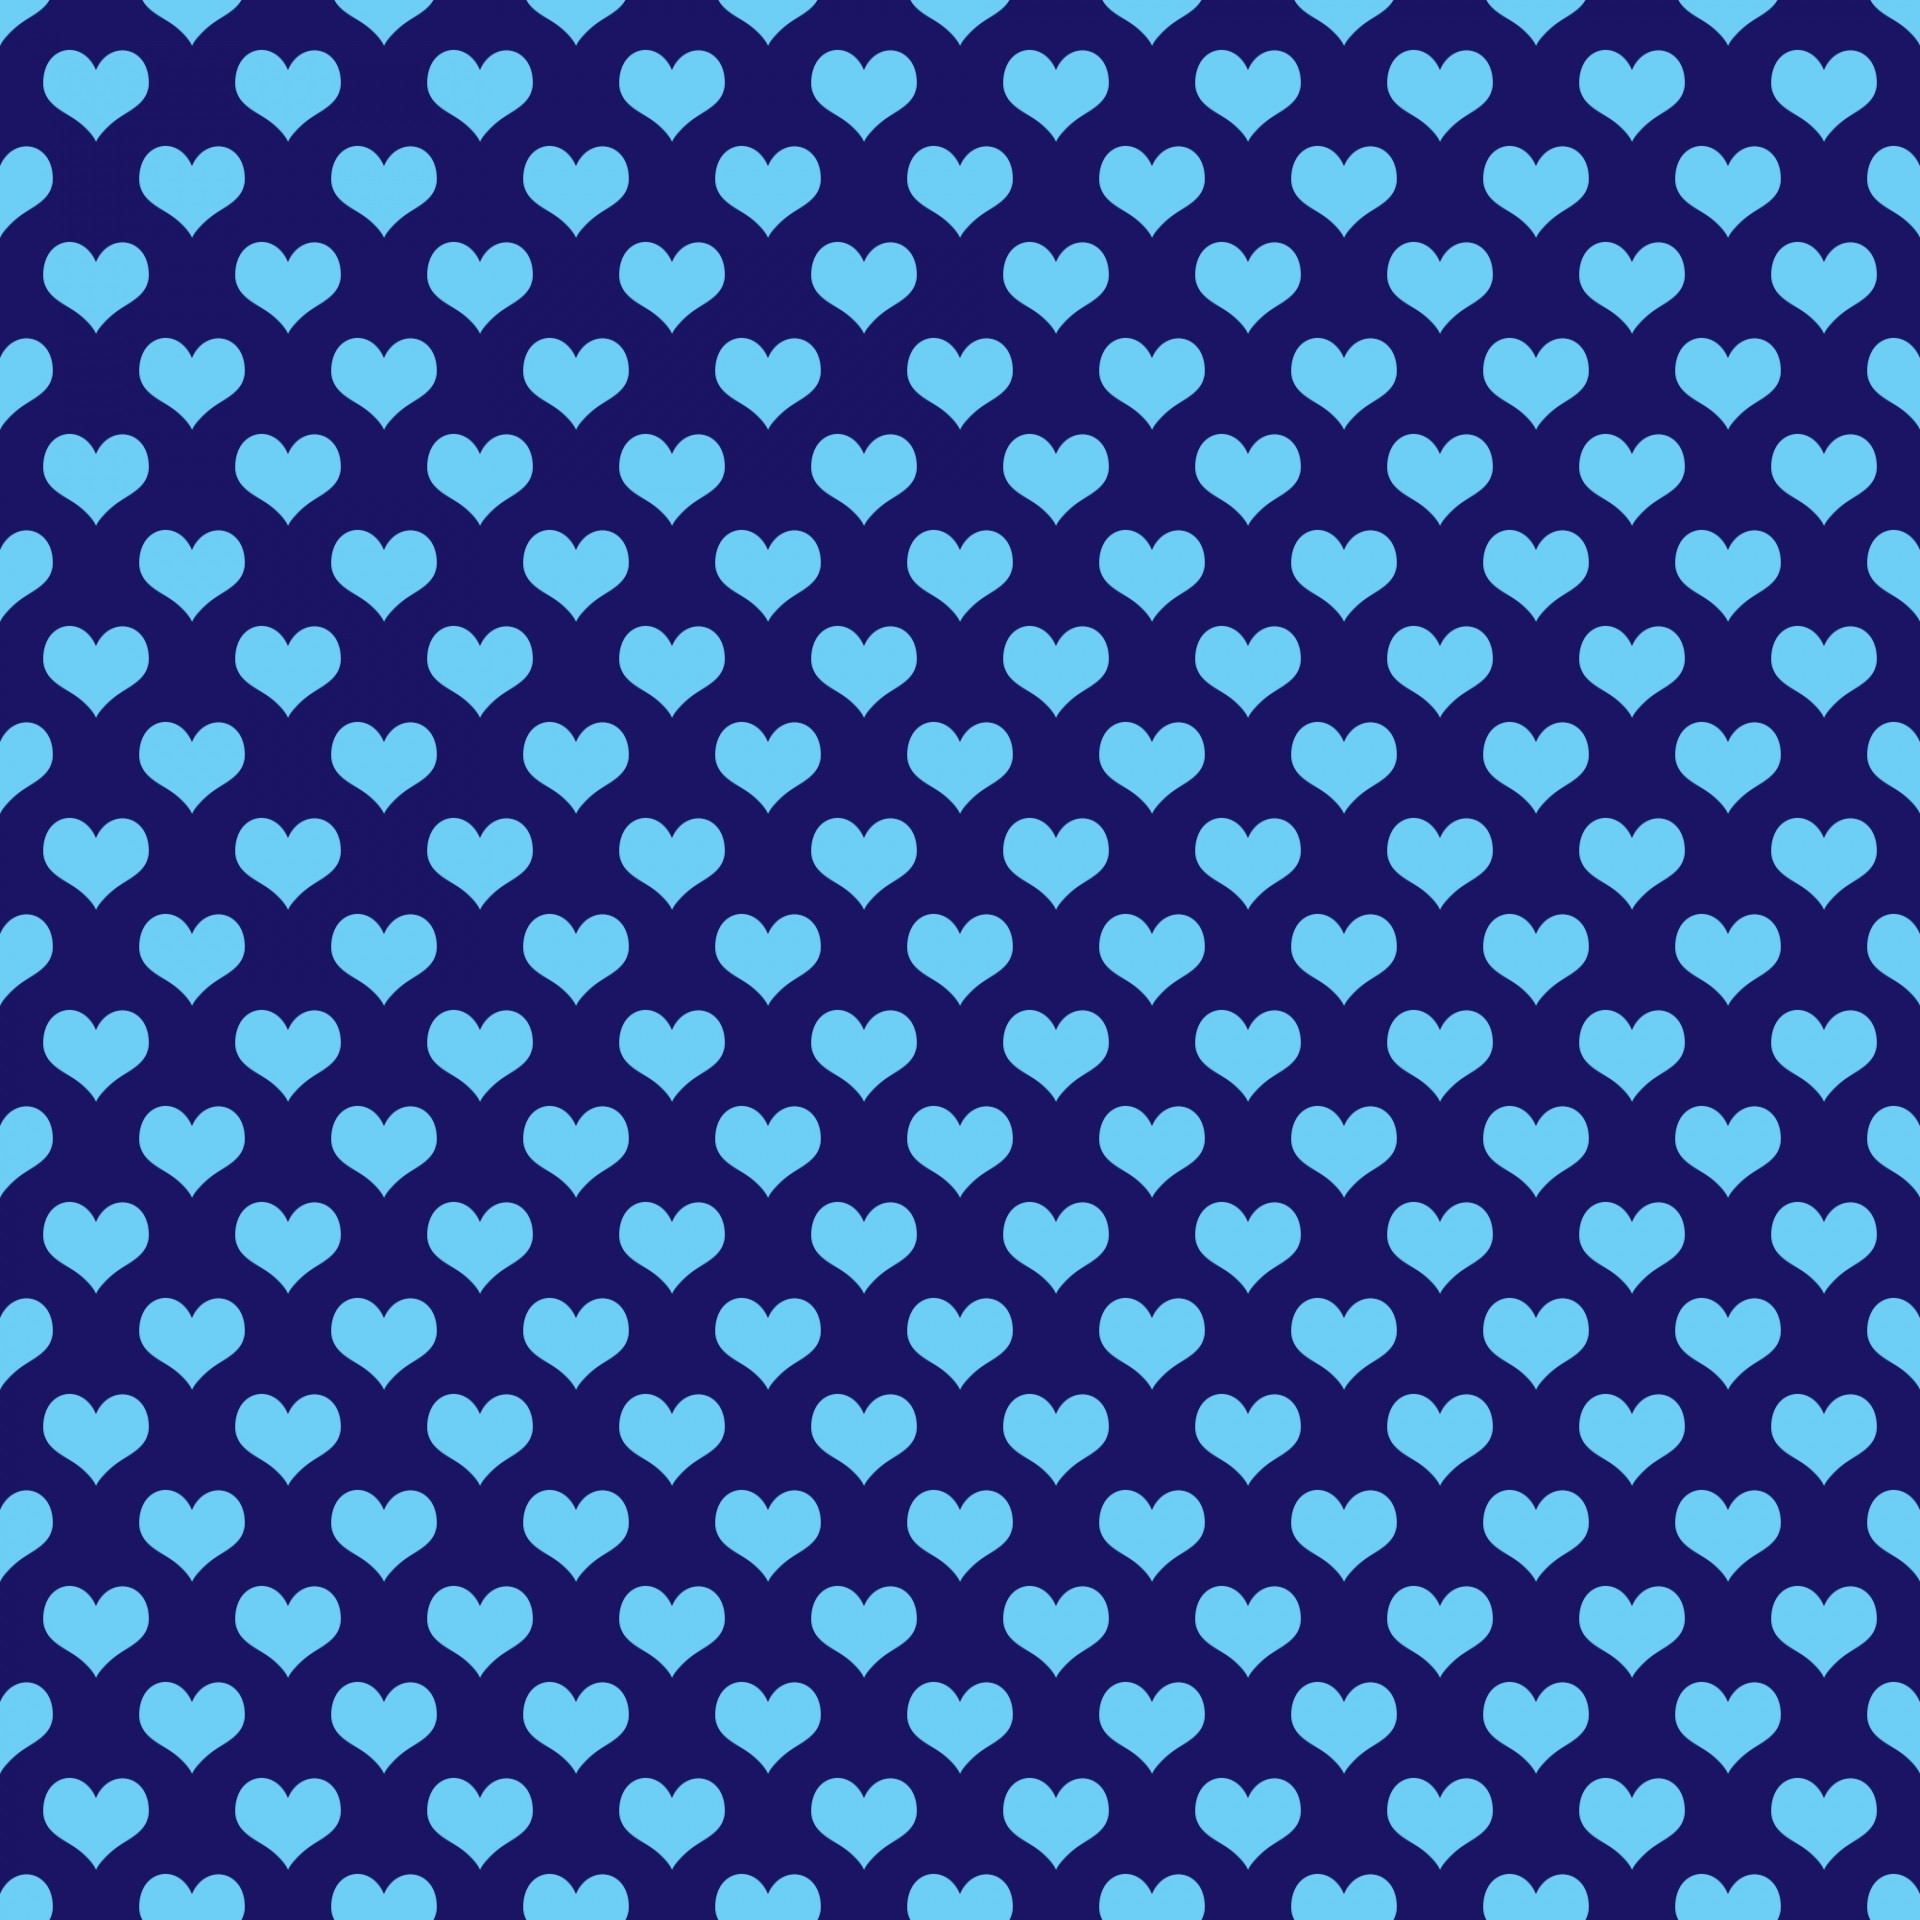 Hearts Background Wallpaper Blue Free Stock Photo – Public Domain Pictures